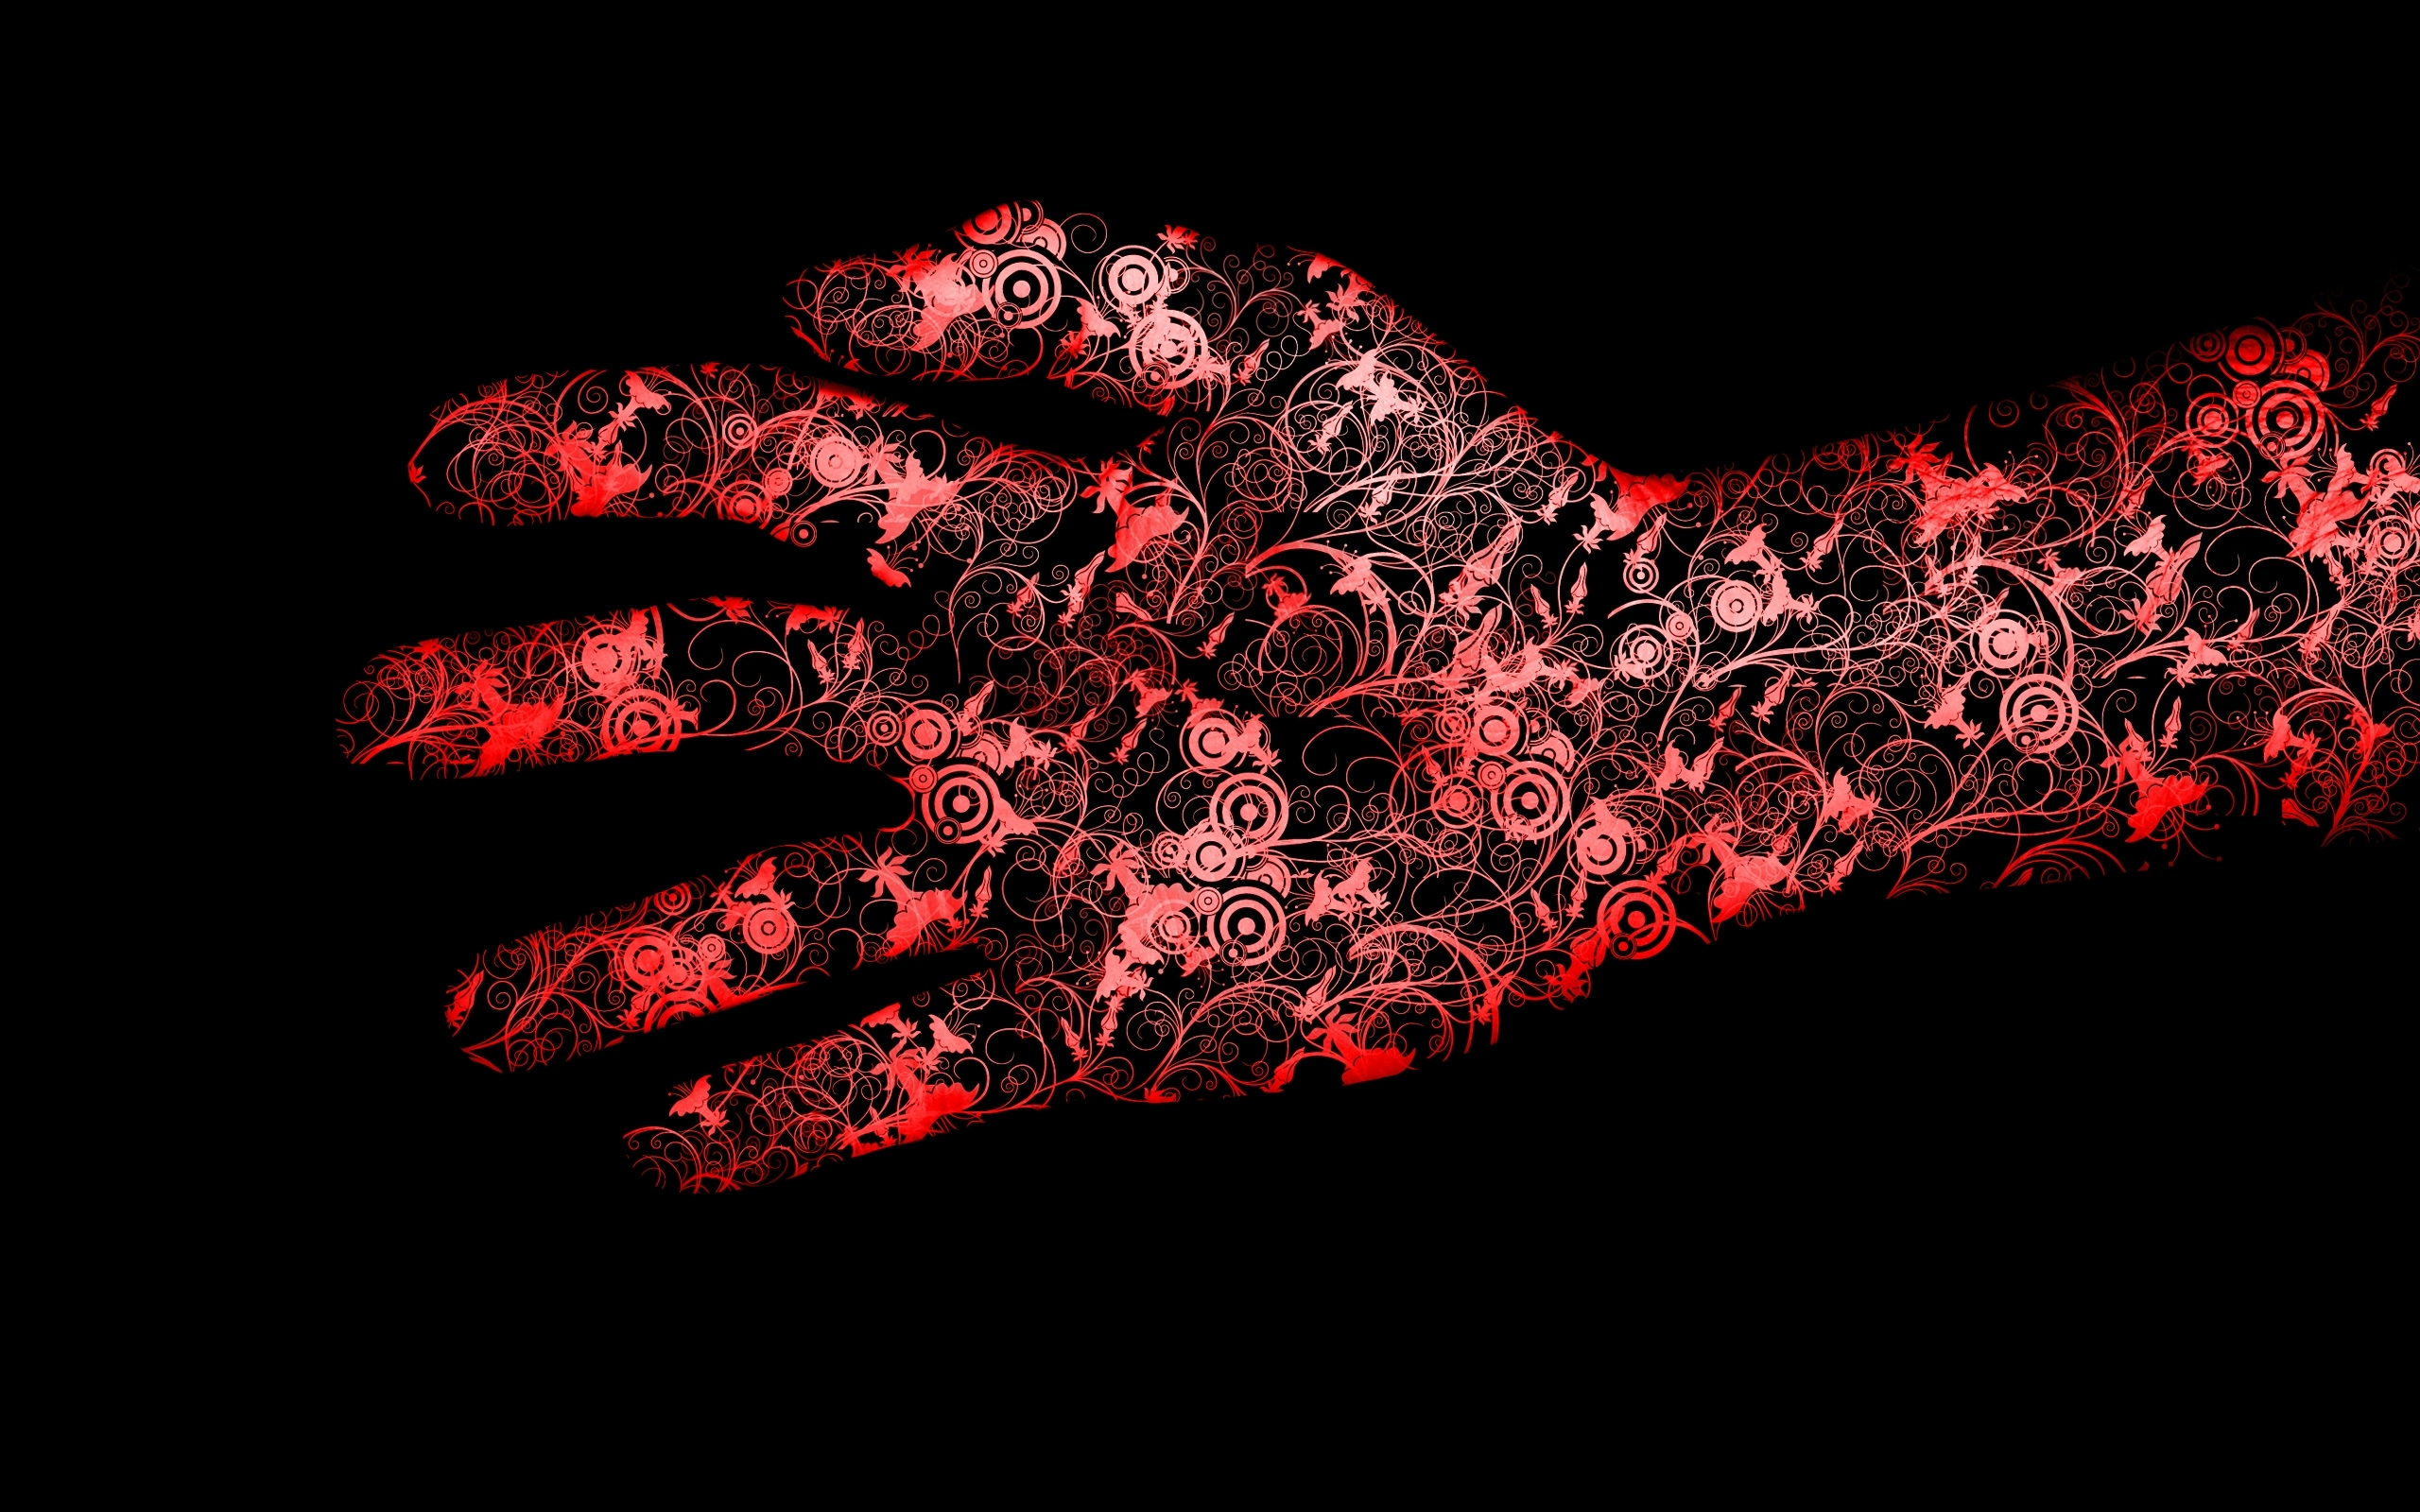 Hd wallpaper red and black - Black And Red Hd Wallpaper 4 Free Wallpaper